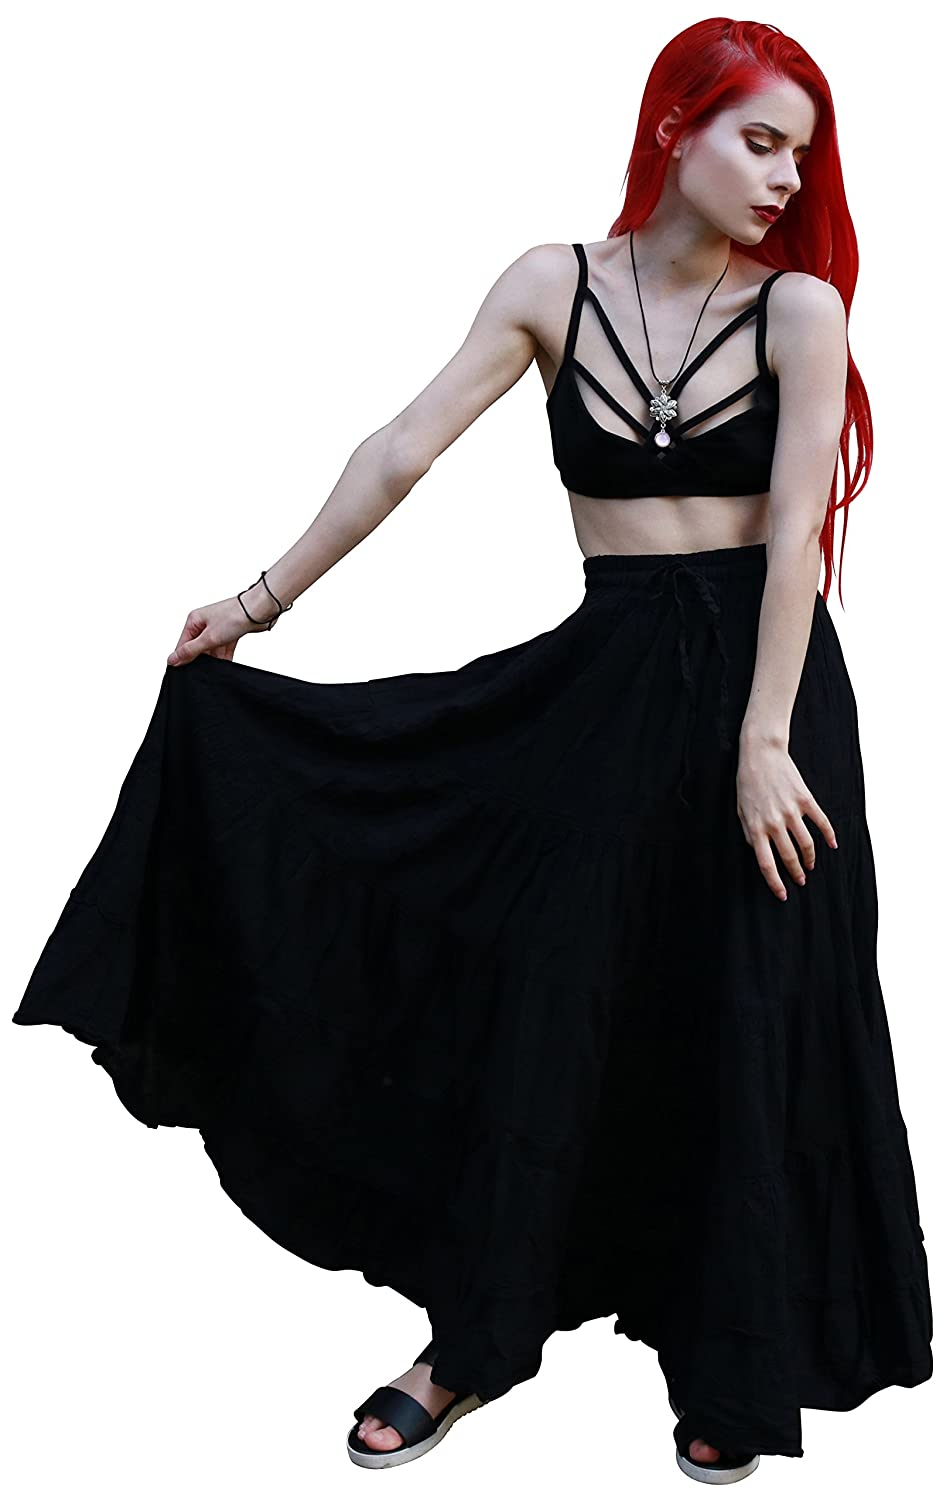 30b0aad709 Size: XS - XL ( US Clothing Size: 0 - 16W ), Waist - UnStretched= 22